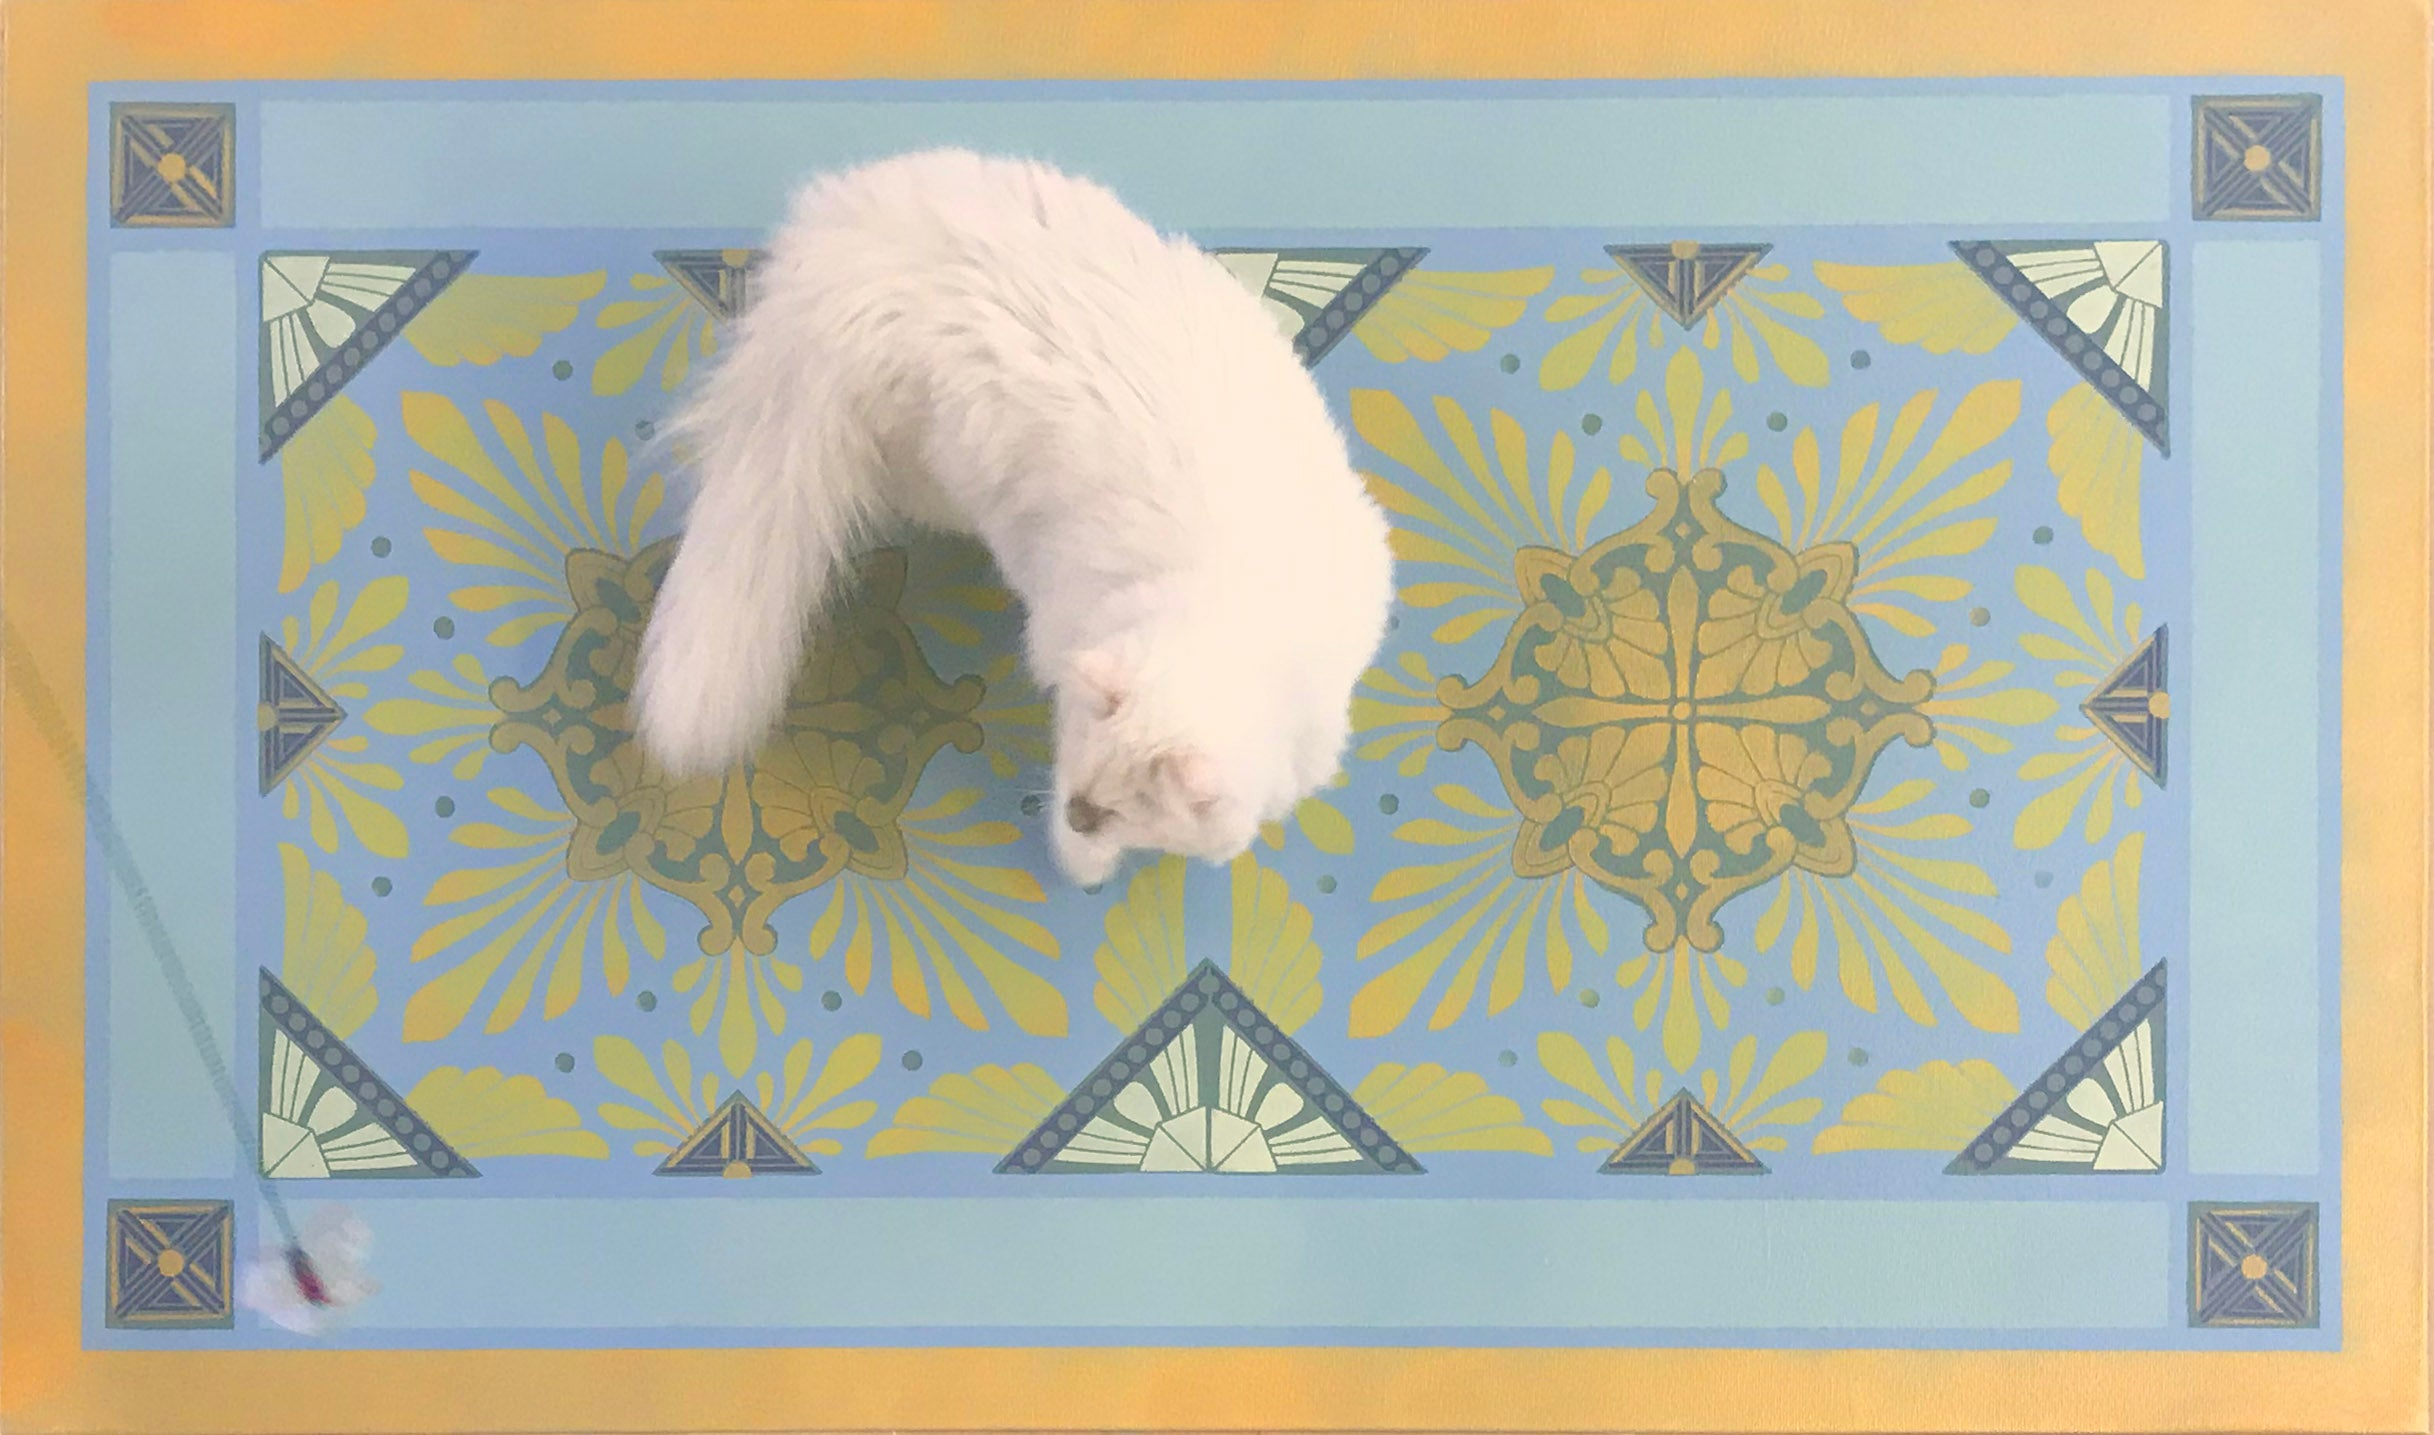 A full image of our Greek Deco Floorcloth #2 with Opal providing scale.